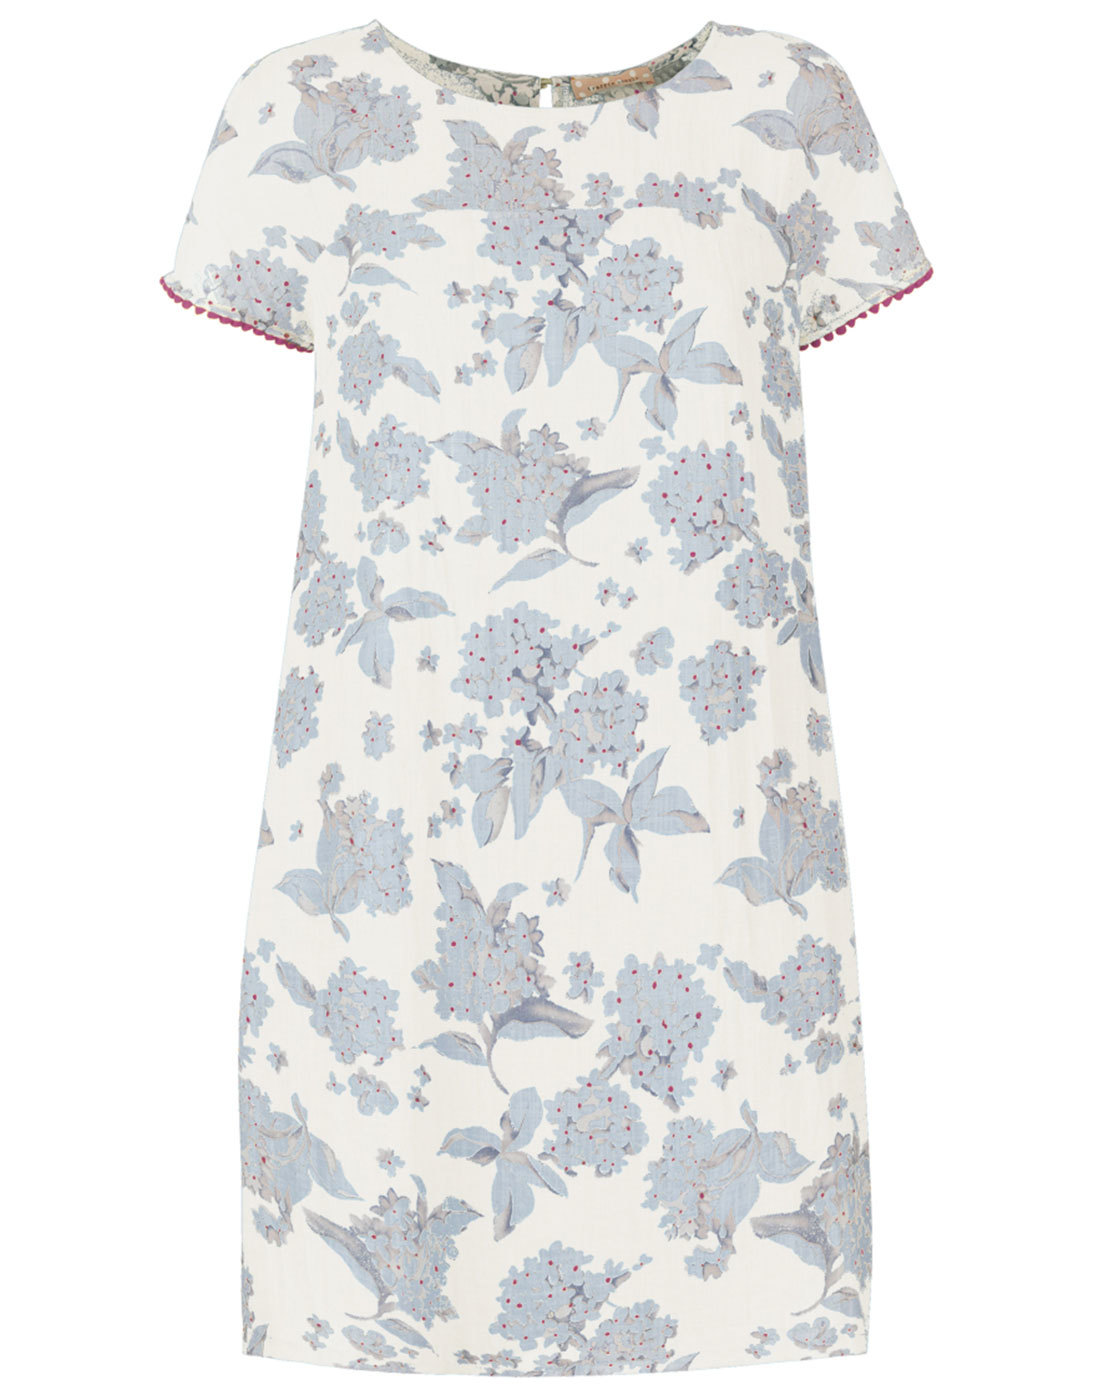 You Wish TRAFFIC PEOPLE 60s Mod Floral Linen Dress